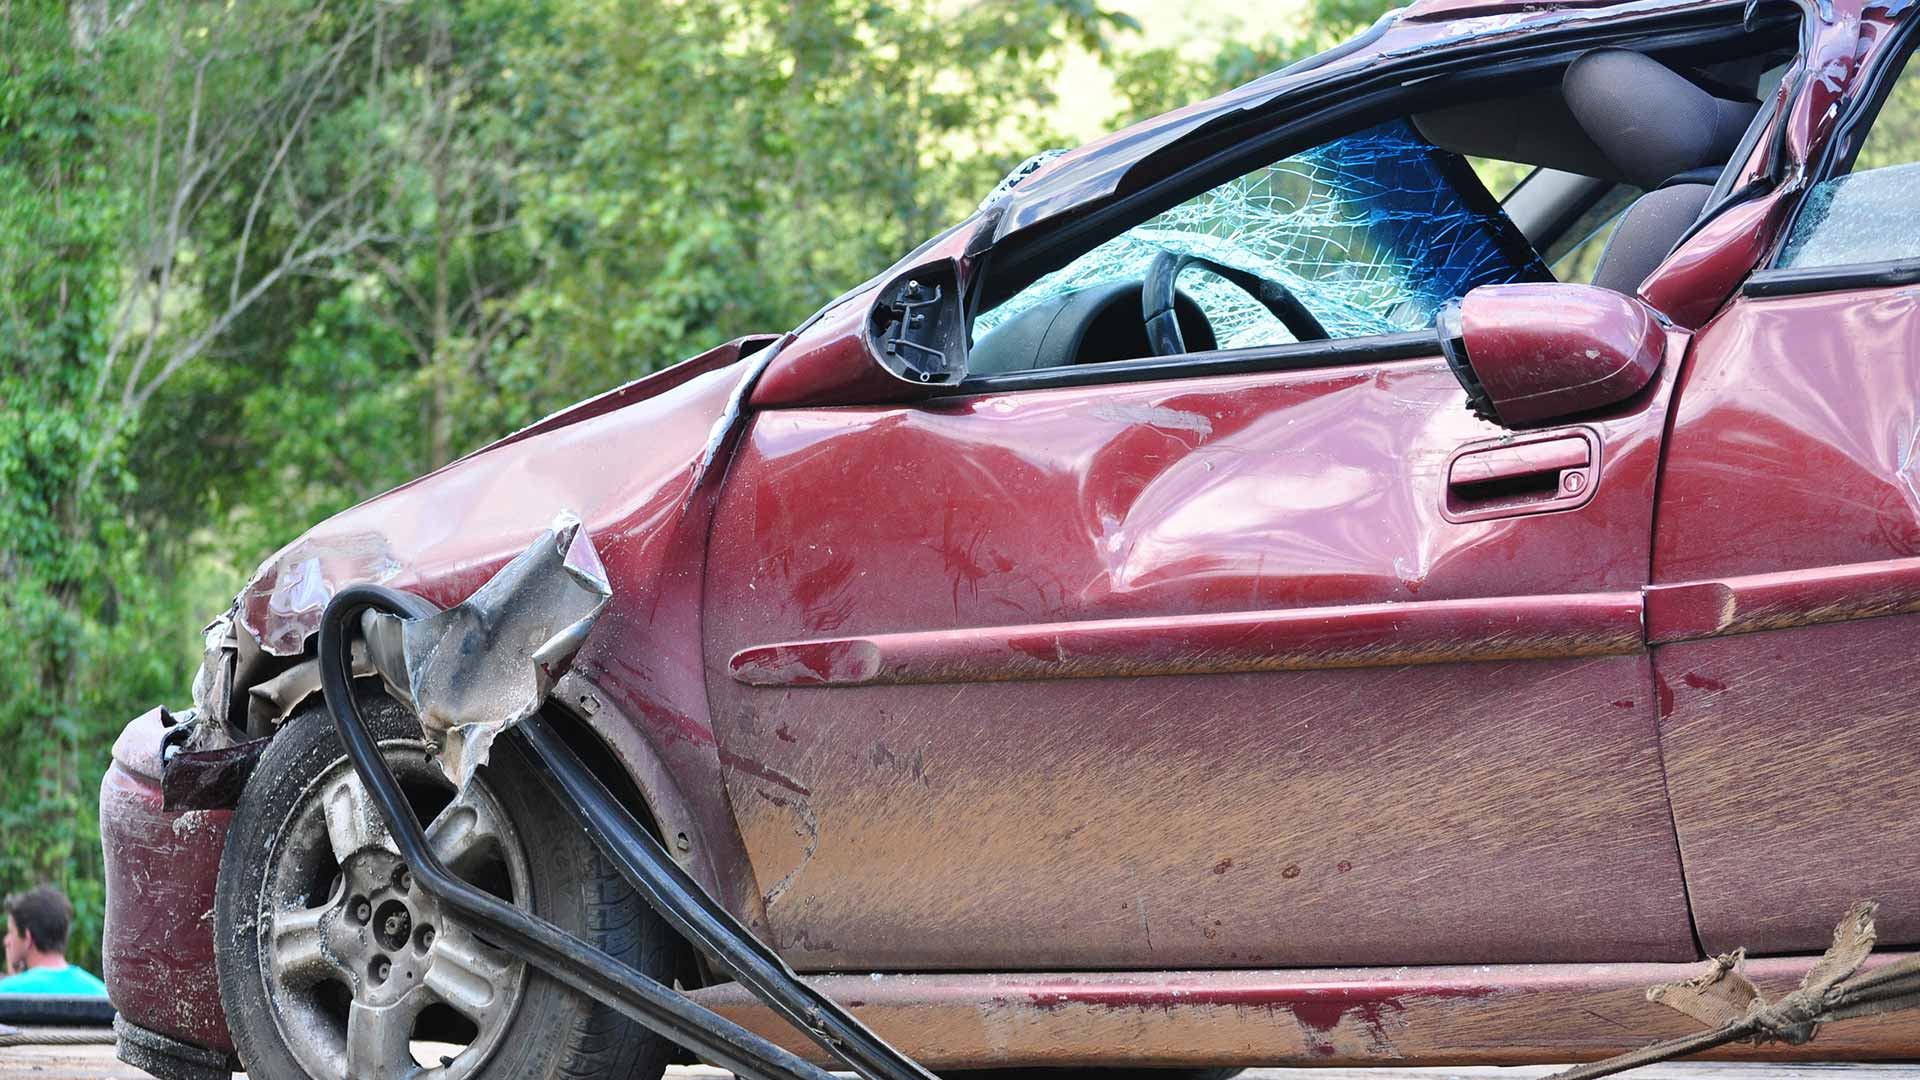 How Our Las Vegas Car Accident LawyerMay Be Able To Help